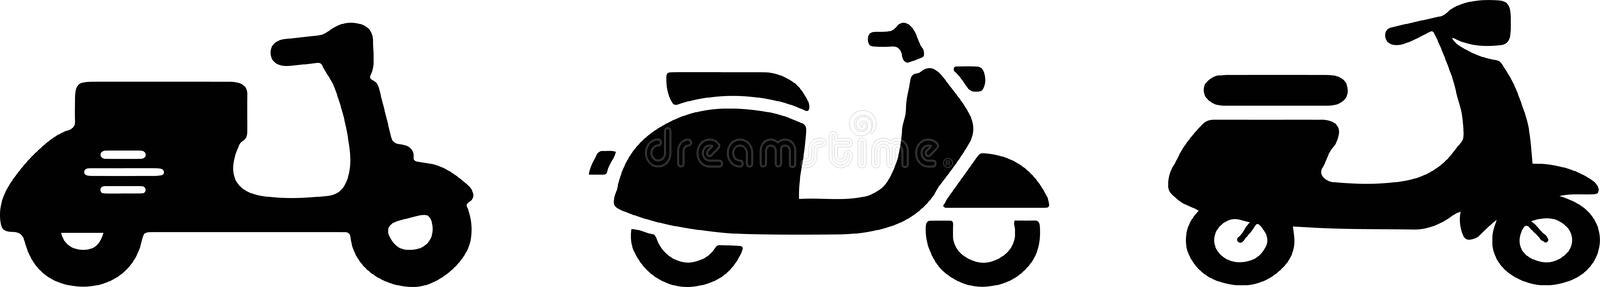 Scooter icon on white background vector illustration